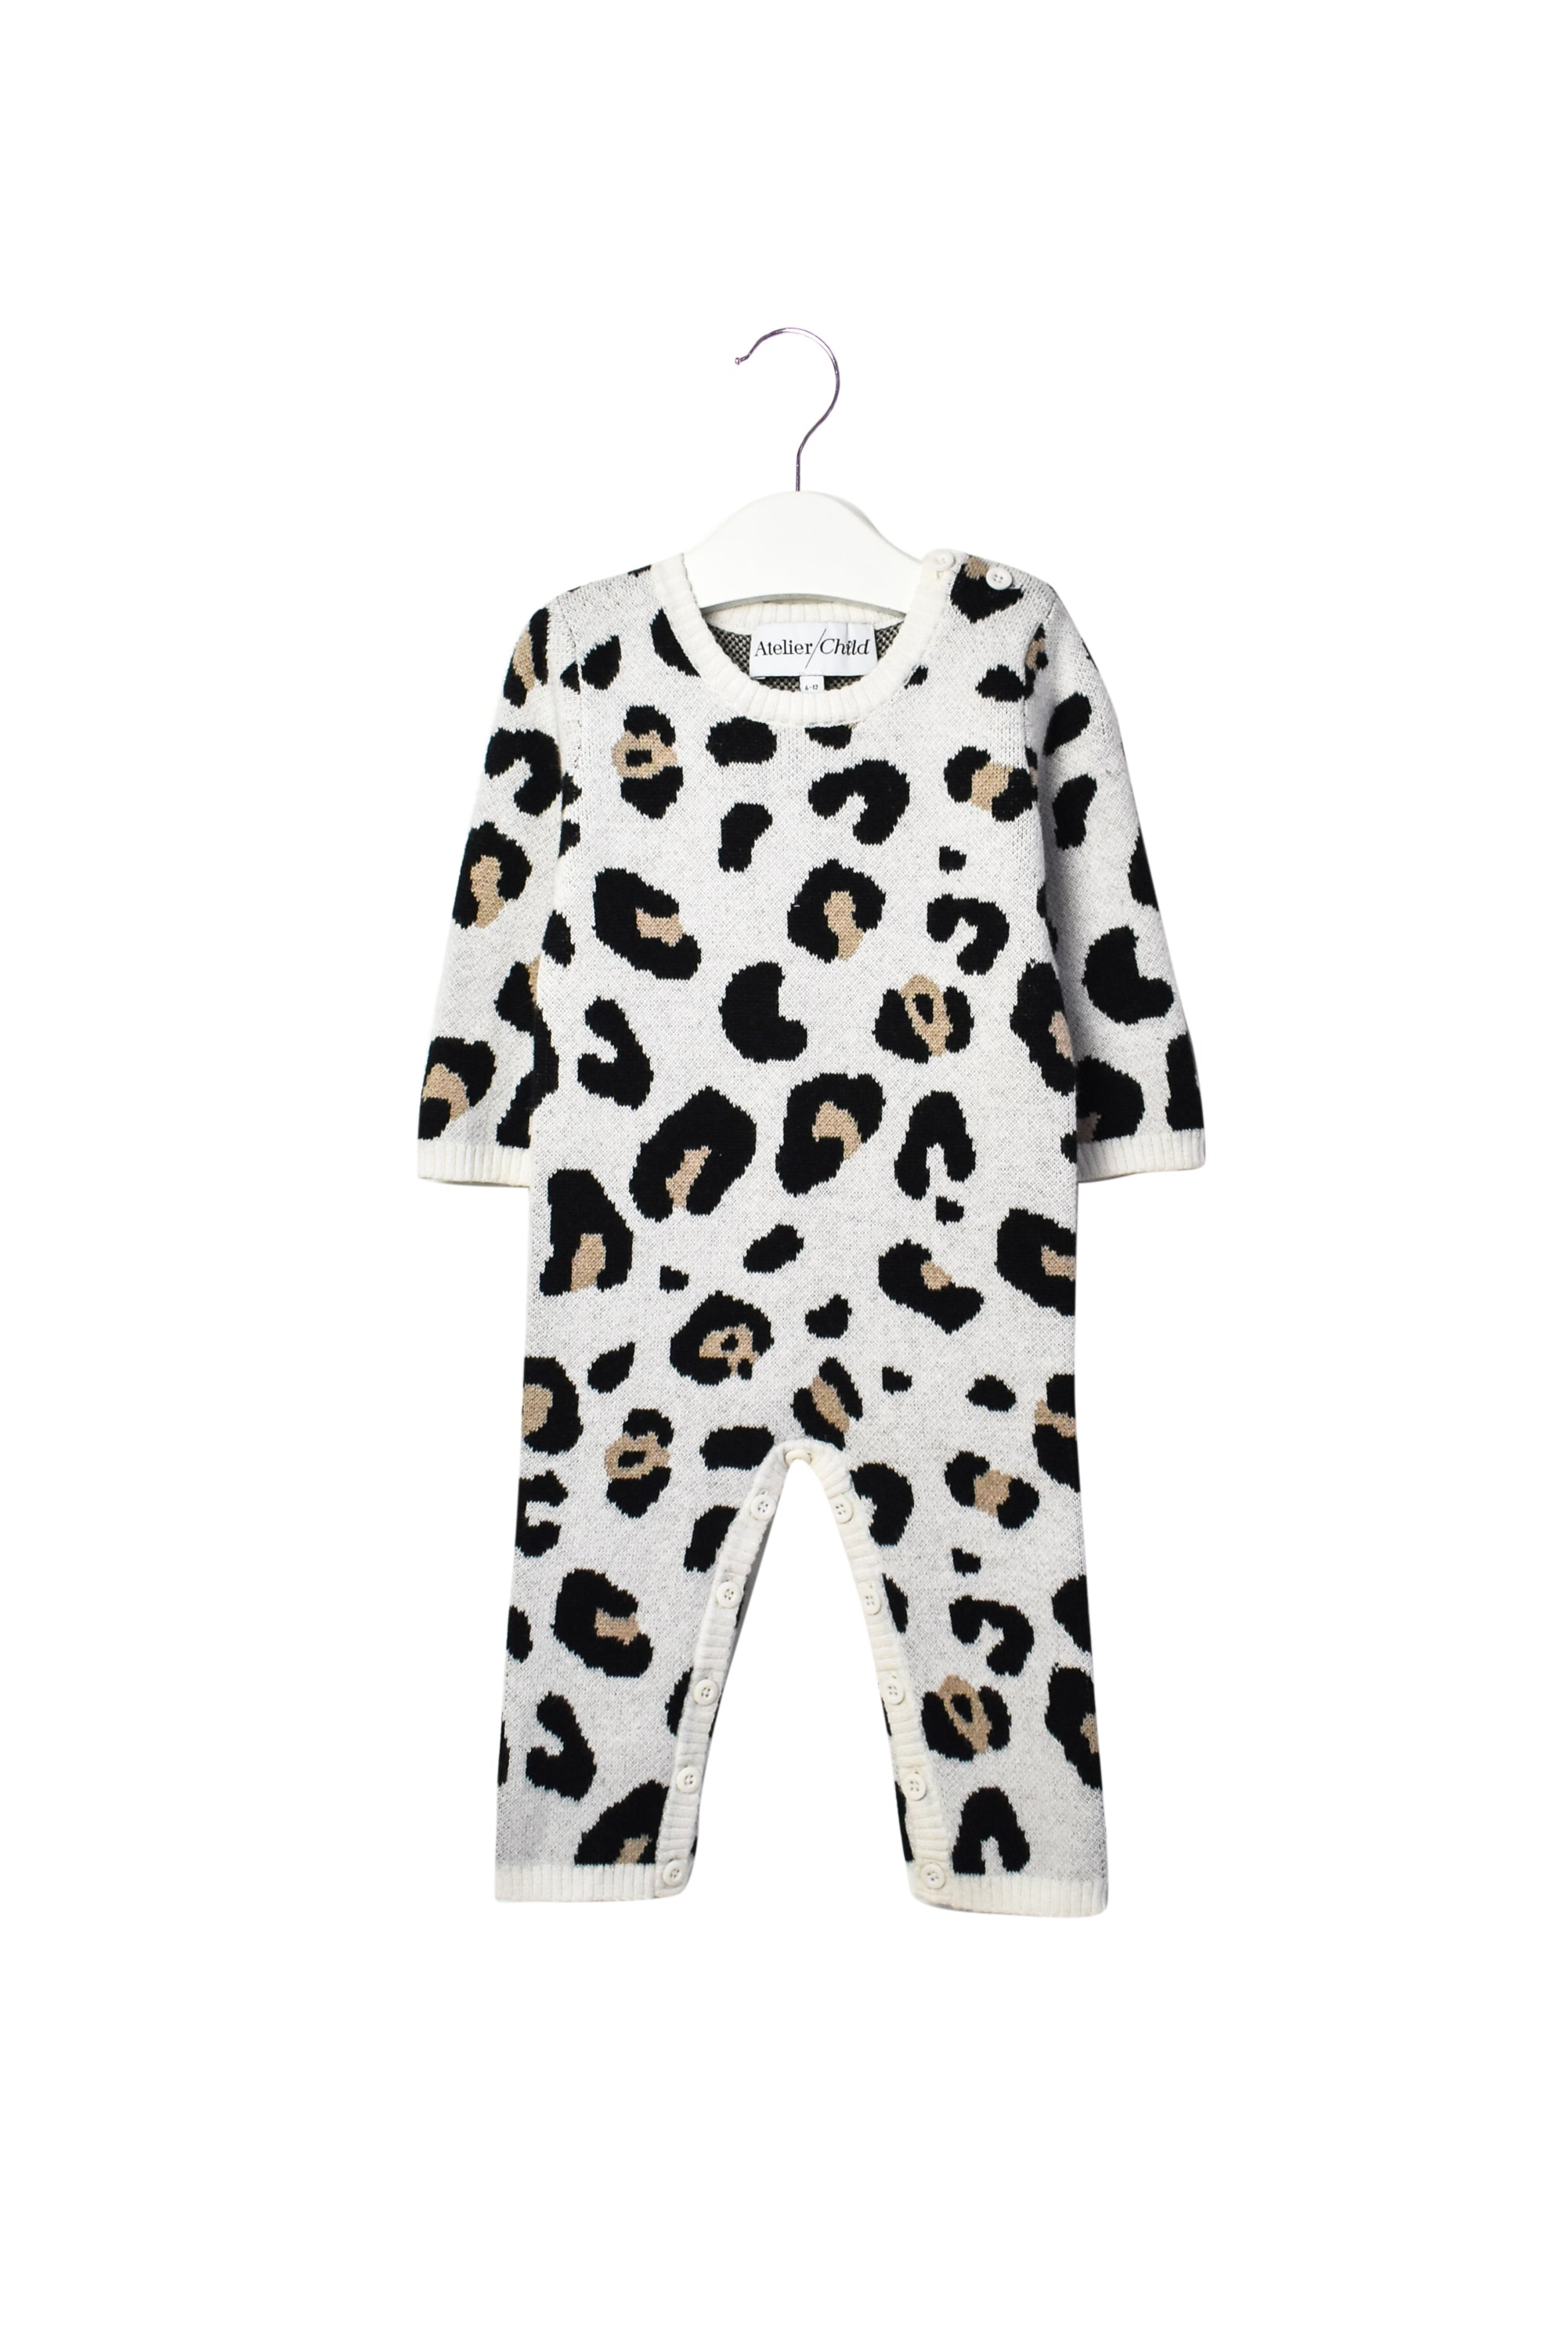 10007585 Atelier Child Baby~Jumpsuit 6-12M at Retykle